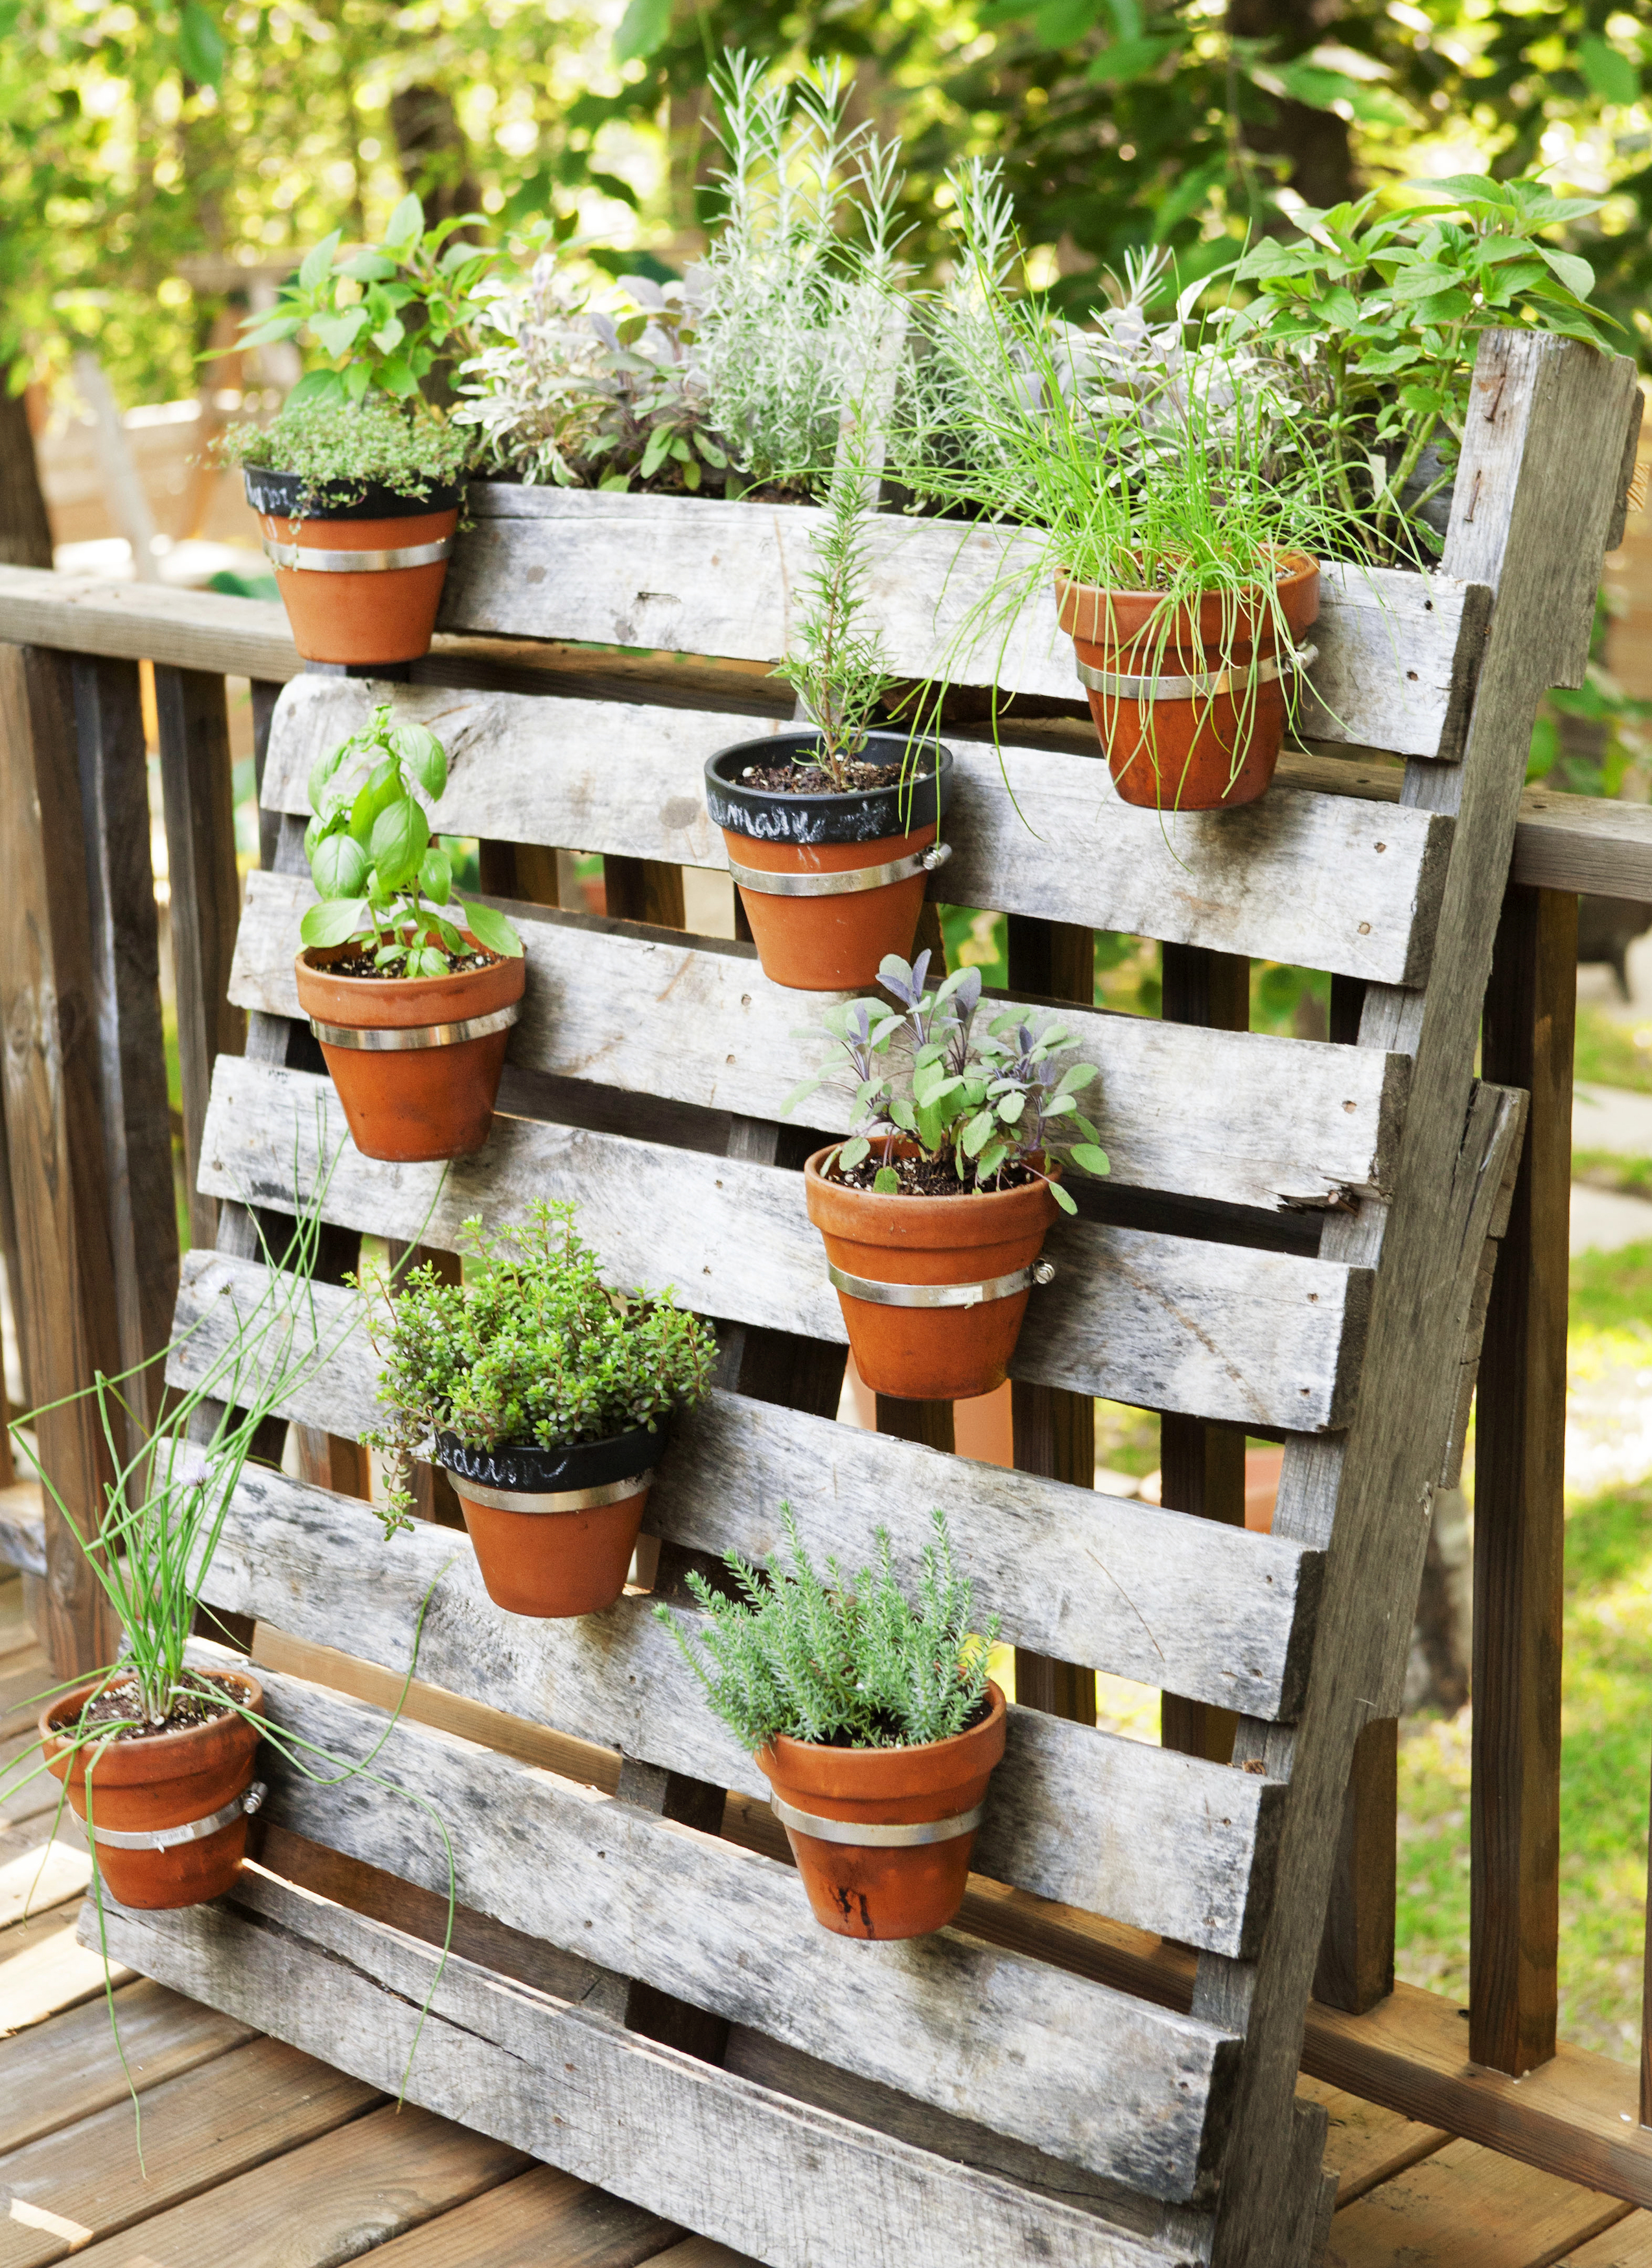 Container Garden Design heres 13 Container Gardening Ideas Potted Plant Ideas We Love